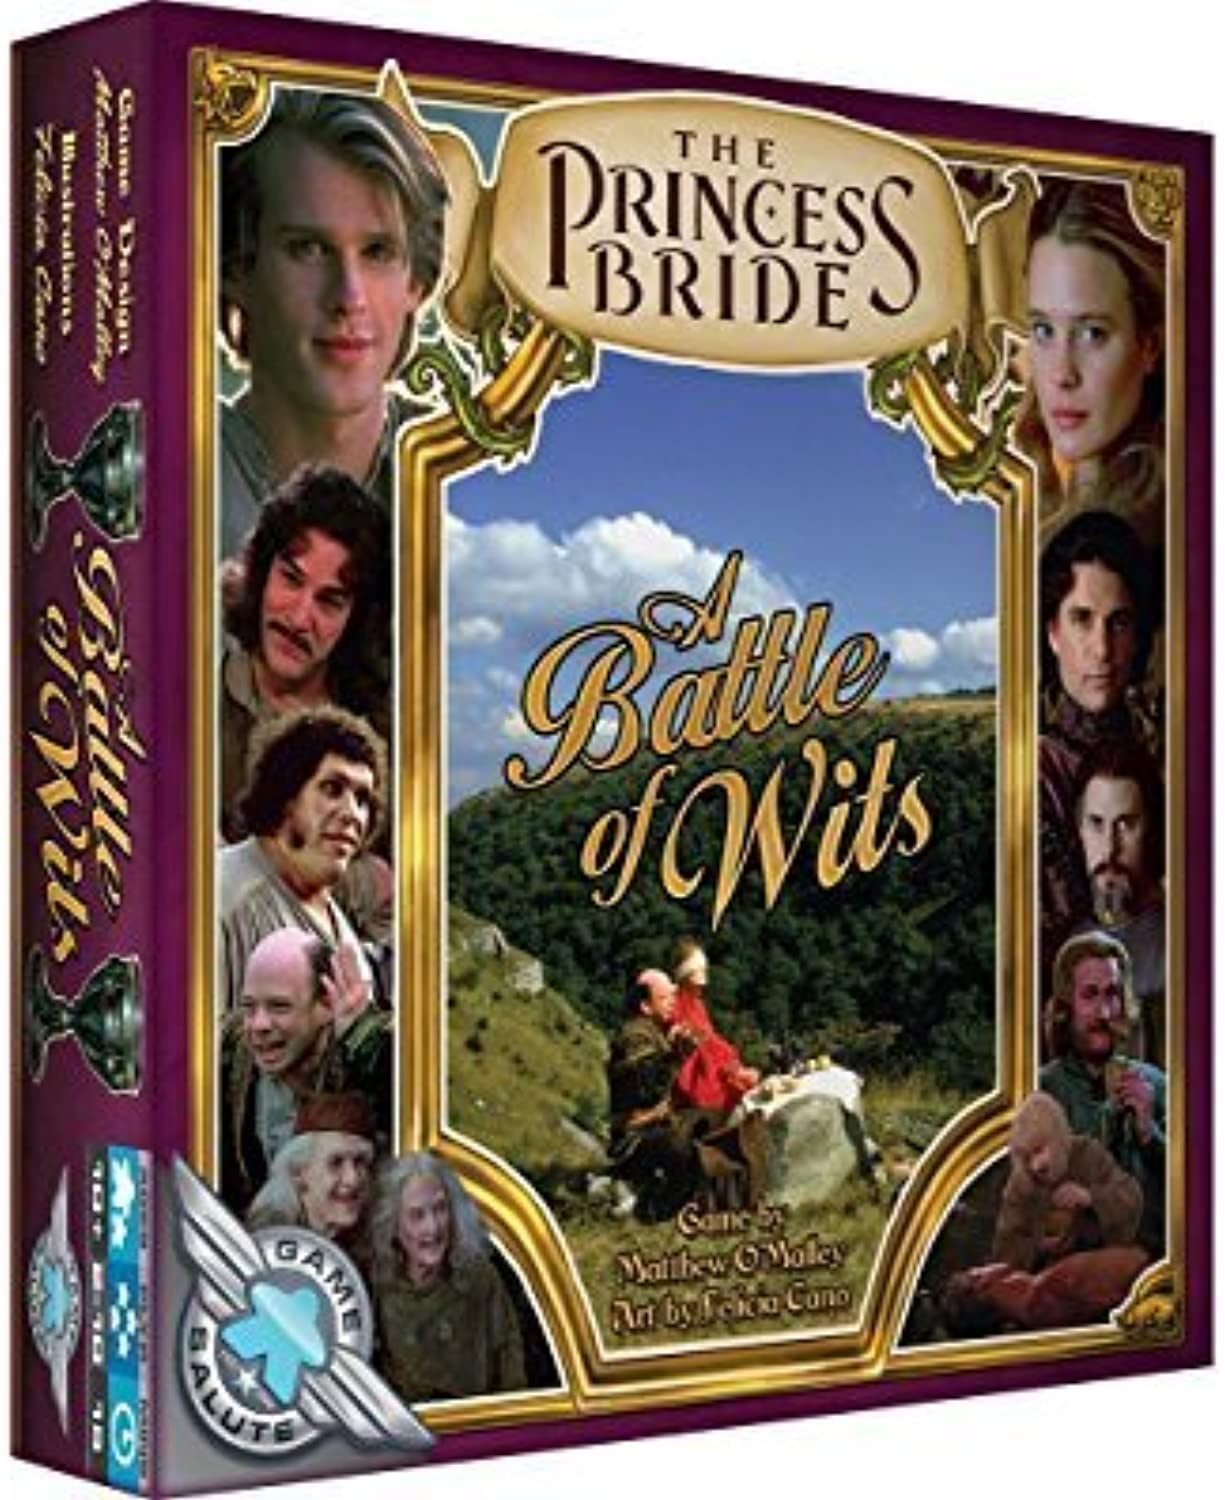 The Princess Bride  A Battle of Wits by Board Games  The Princess Bride